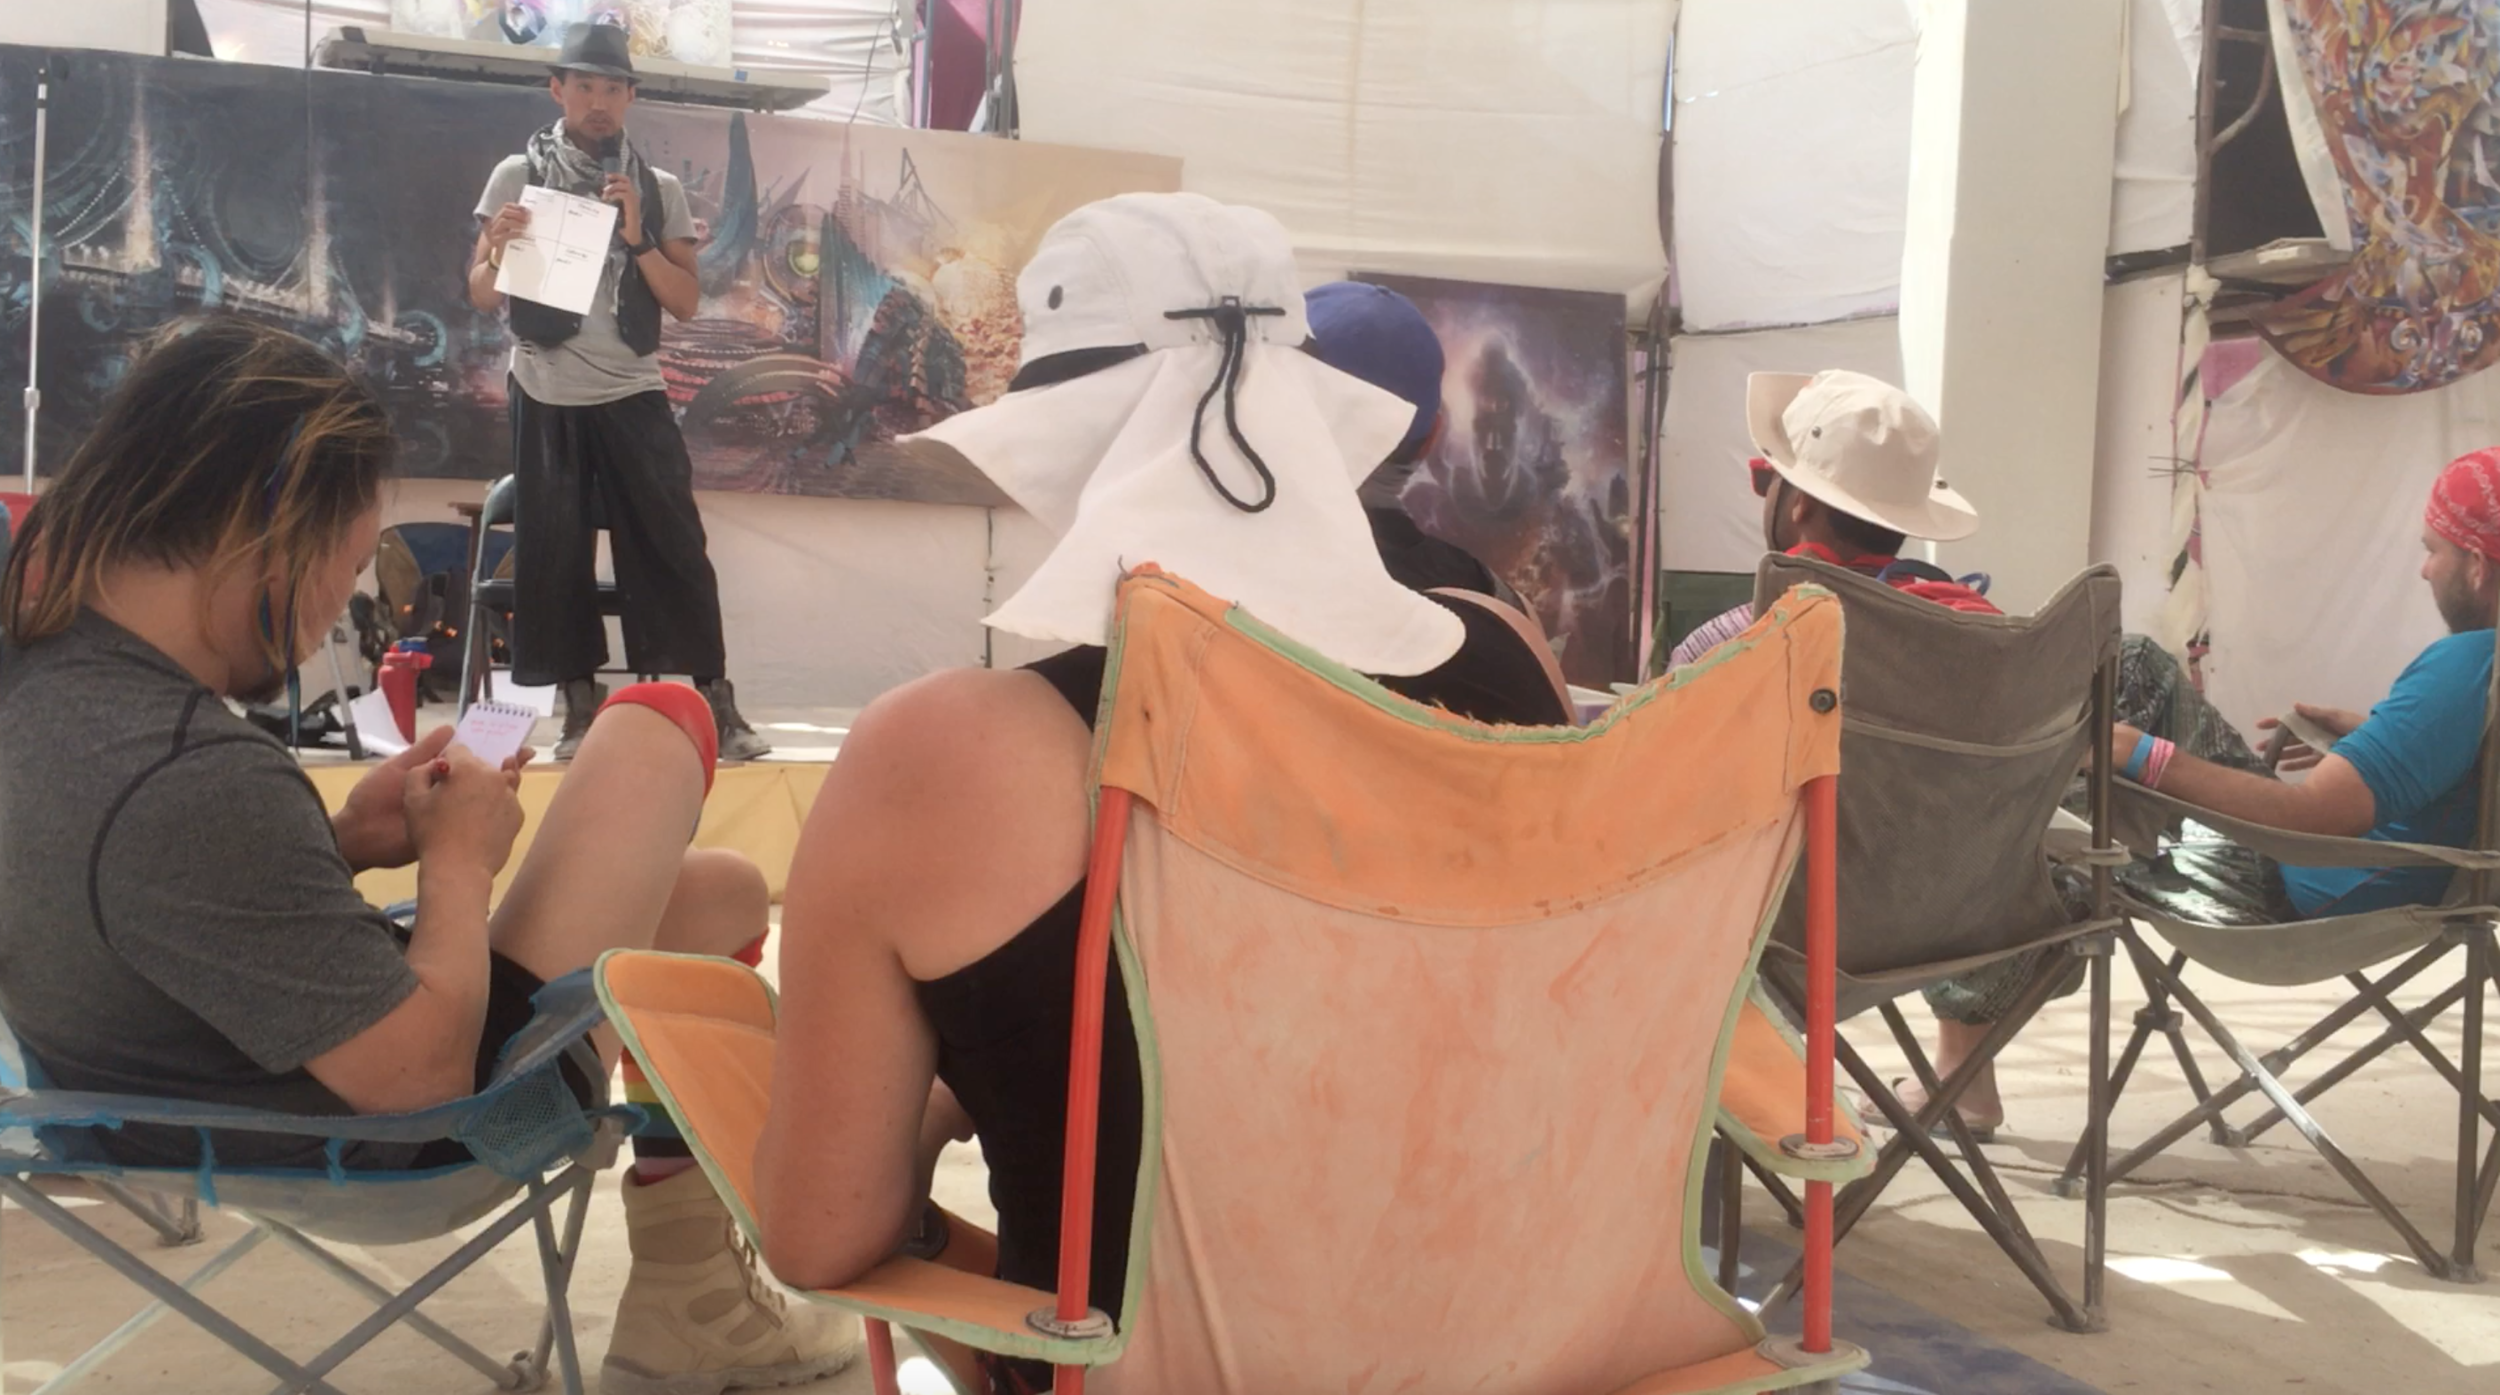 CK Speaking at Burning Man About High-Performance Culture